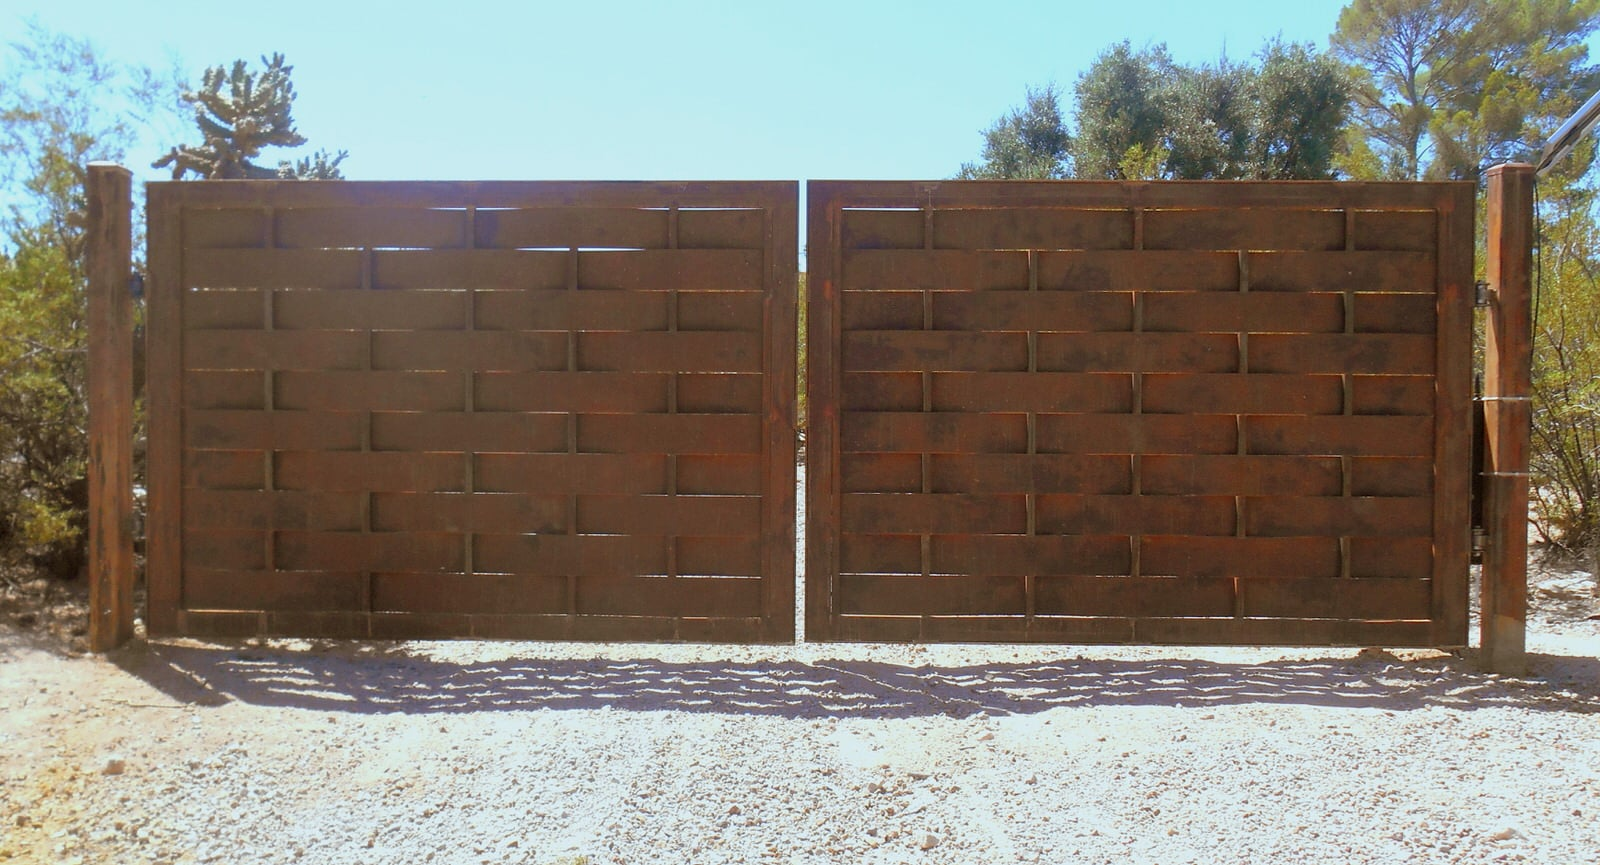 Automatic driveway gates with heavy frame, basket weave pattern made with large steel plates, and rust finish 32 AG